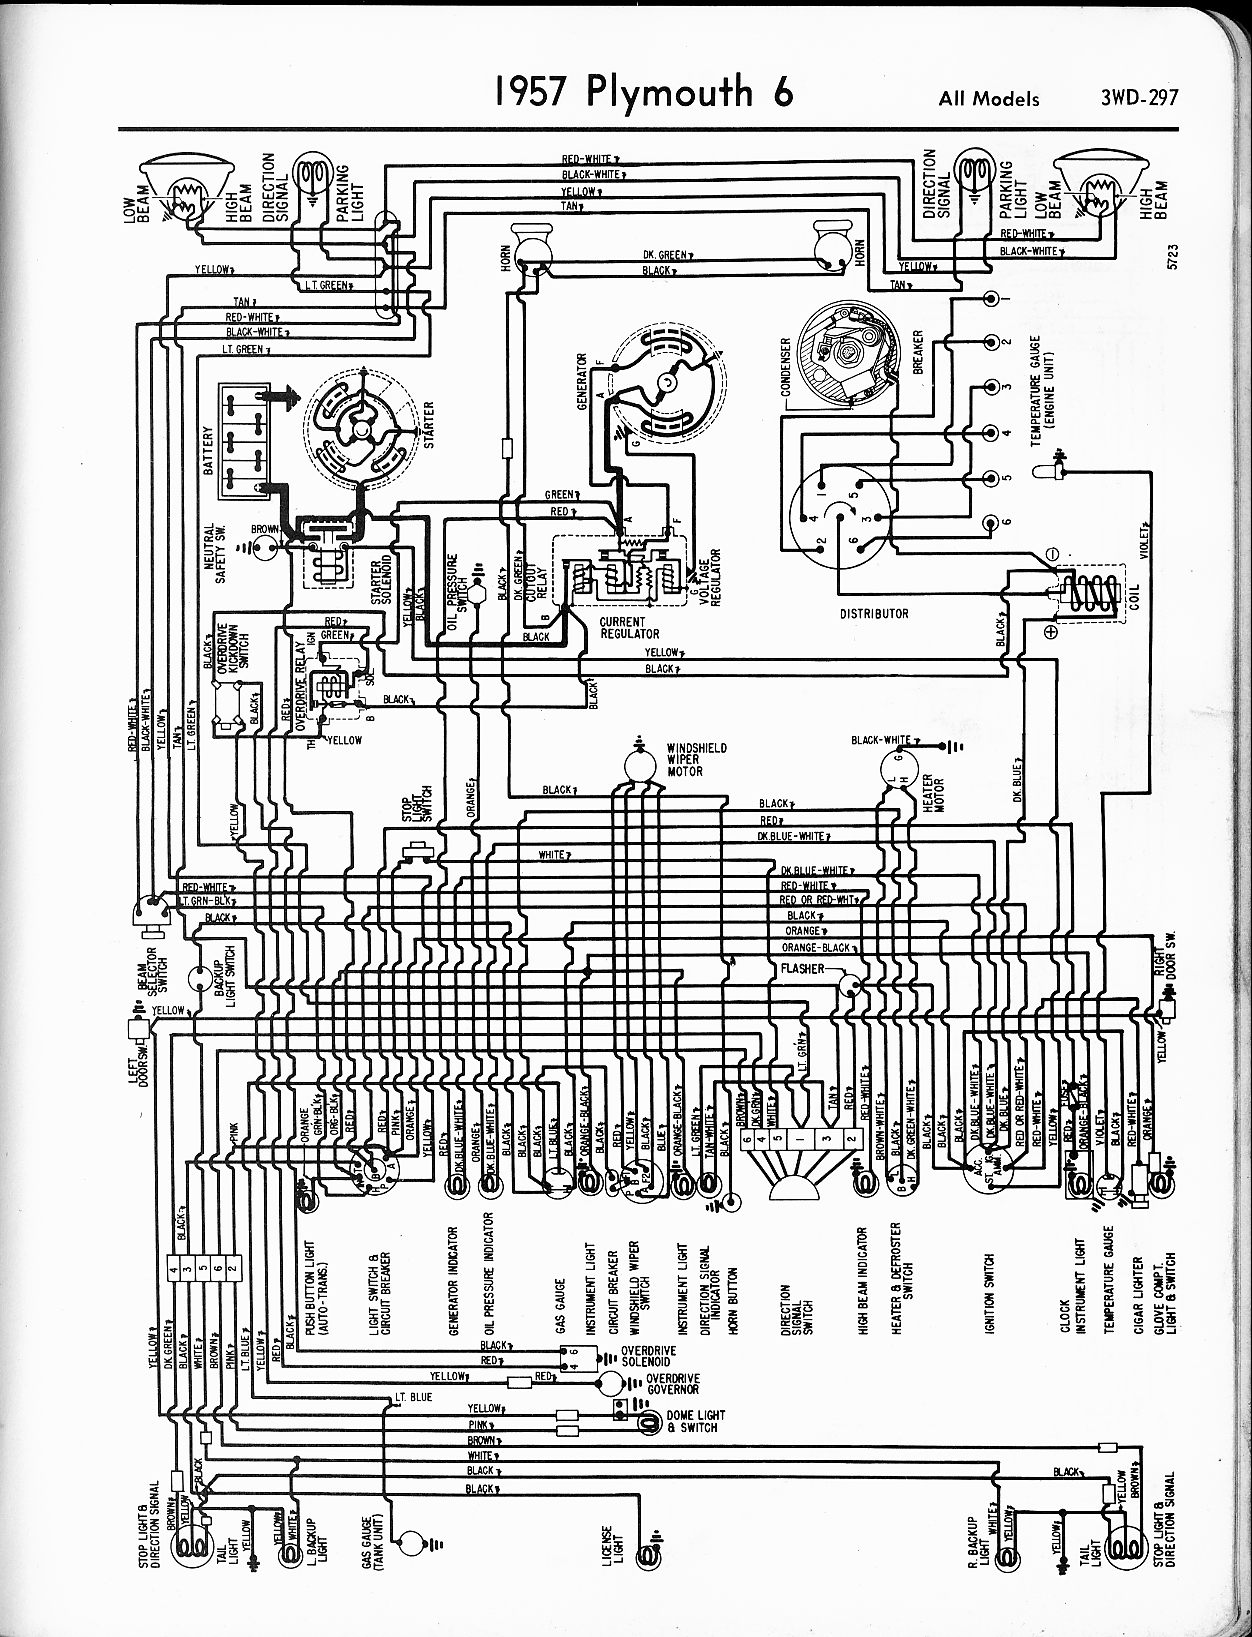 Th8320wf1029 Wiring Diagram Name Free Download Prestige Electrical Diagrams